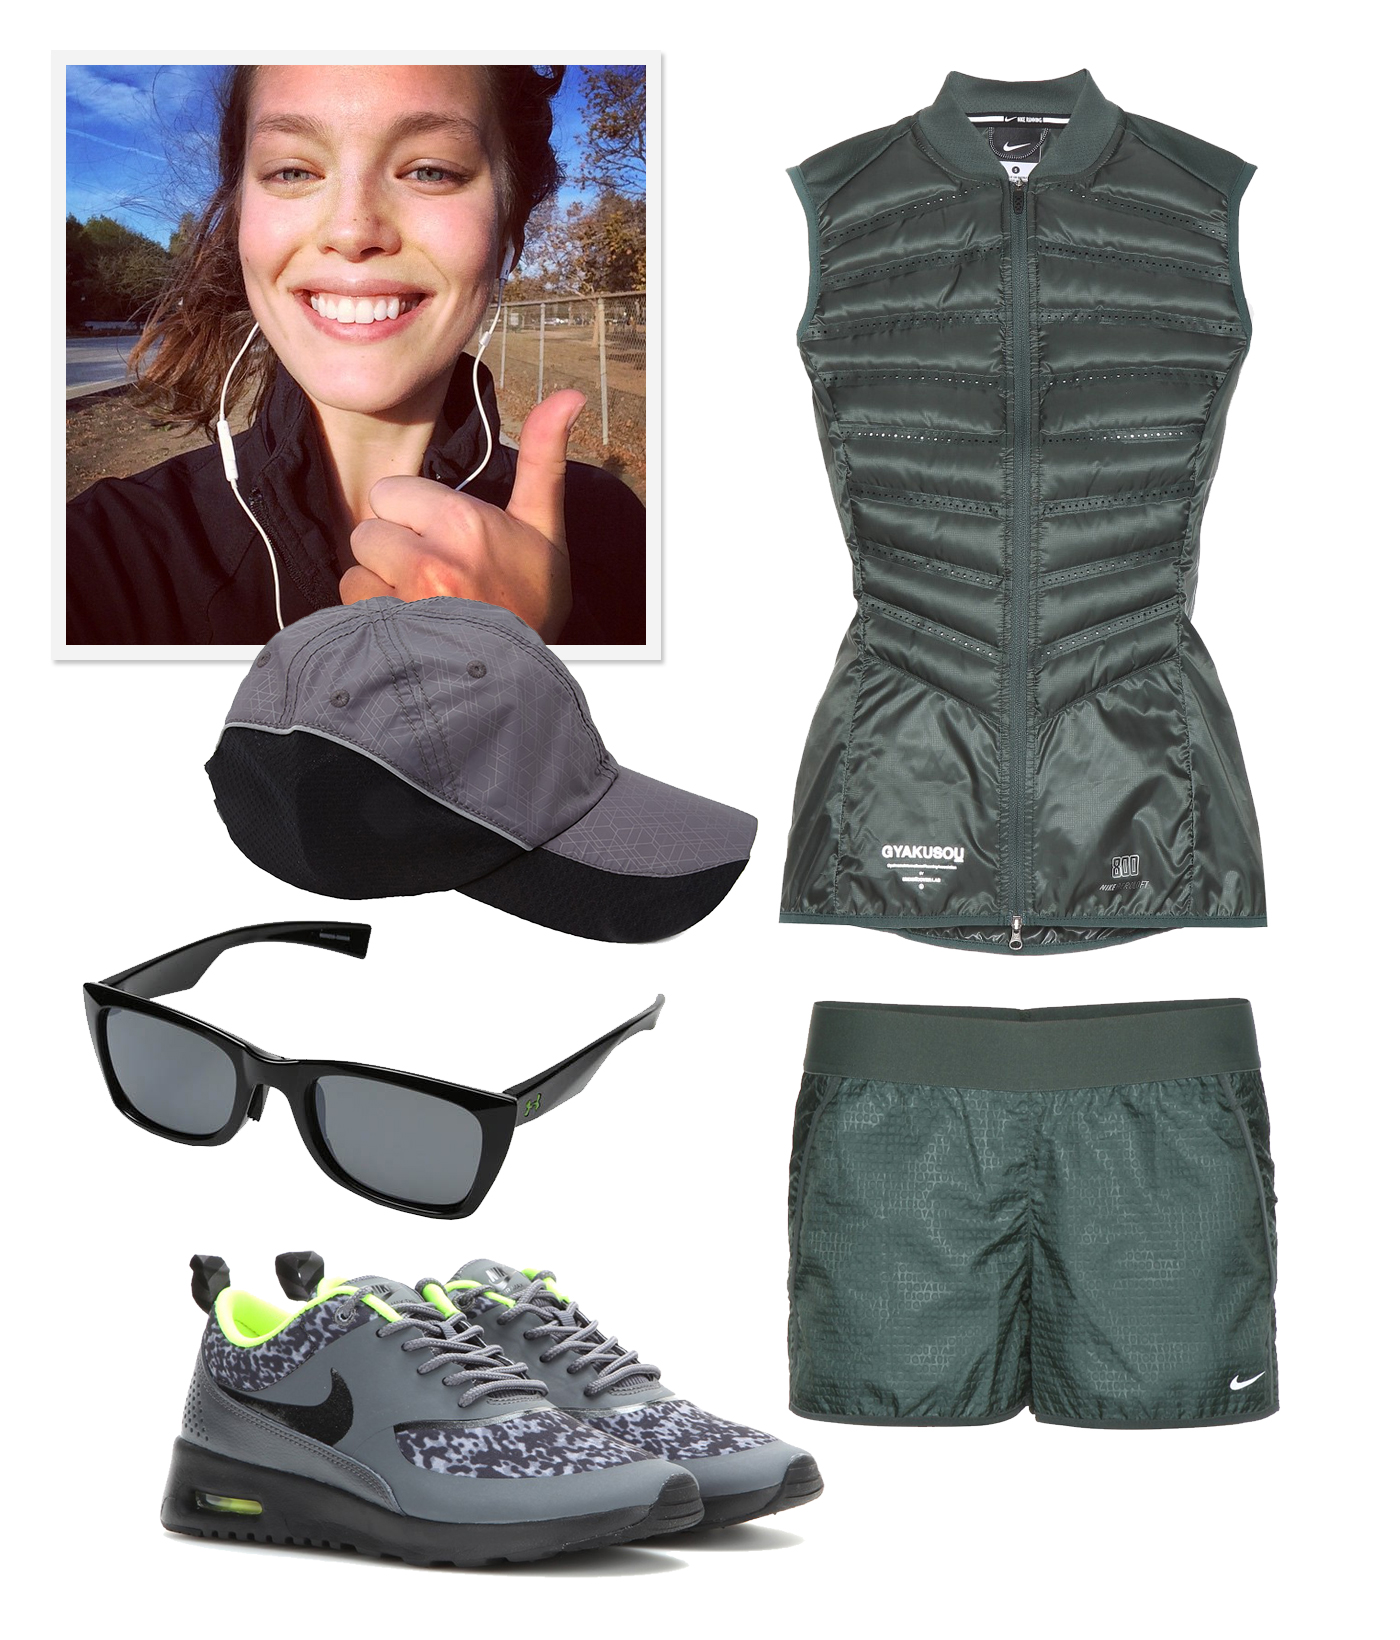 new-years-resolution-workout-gear-01.jpg